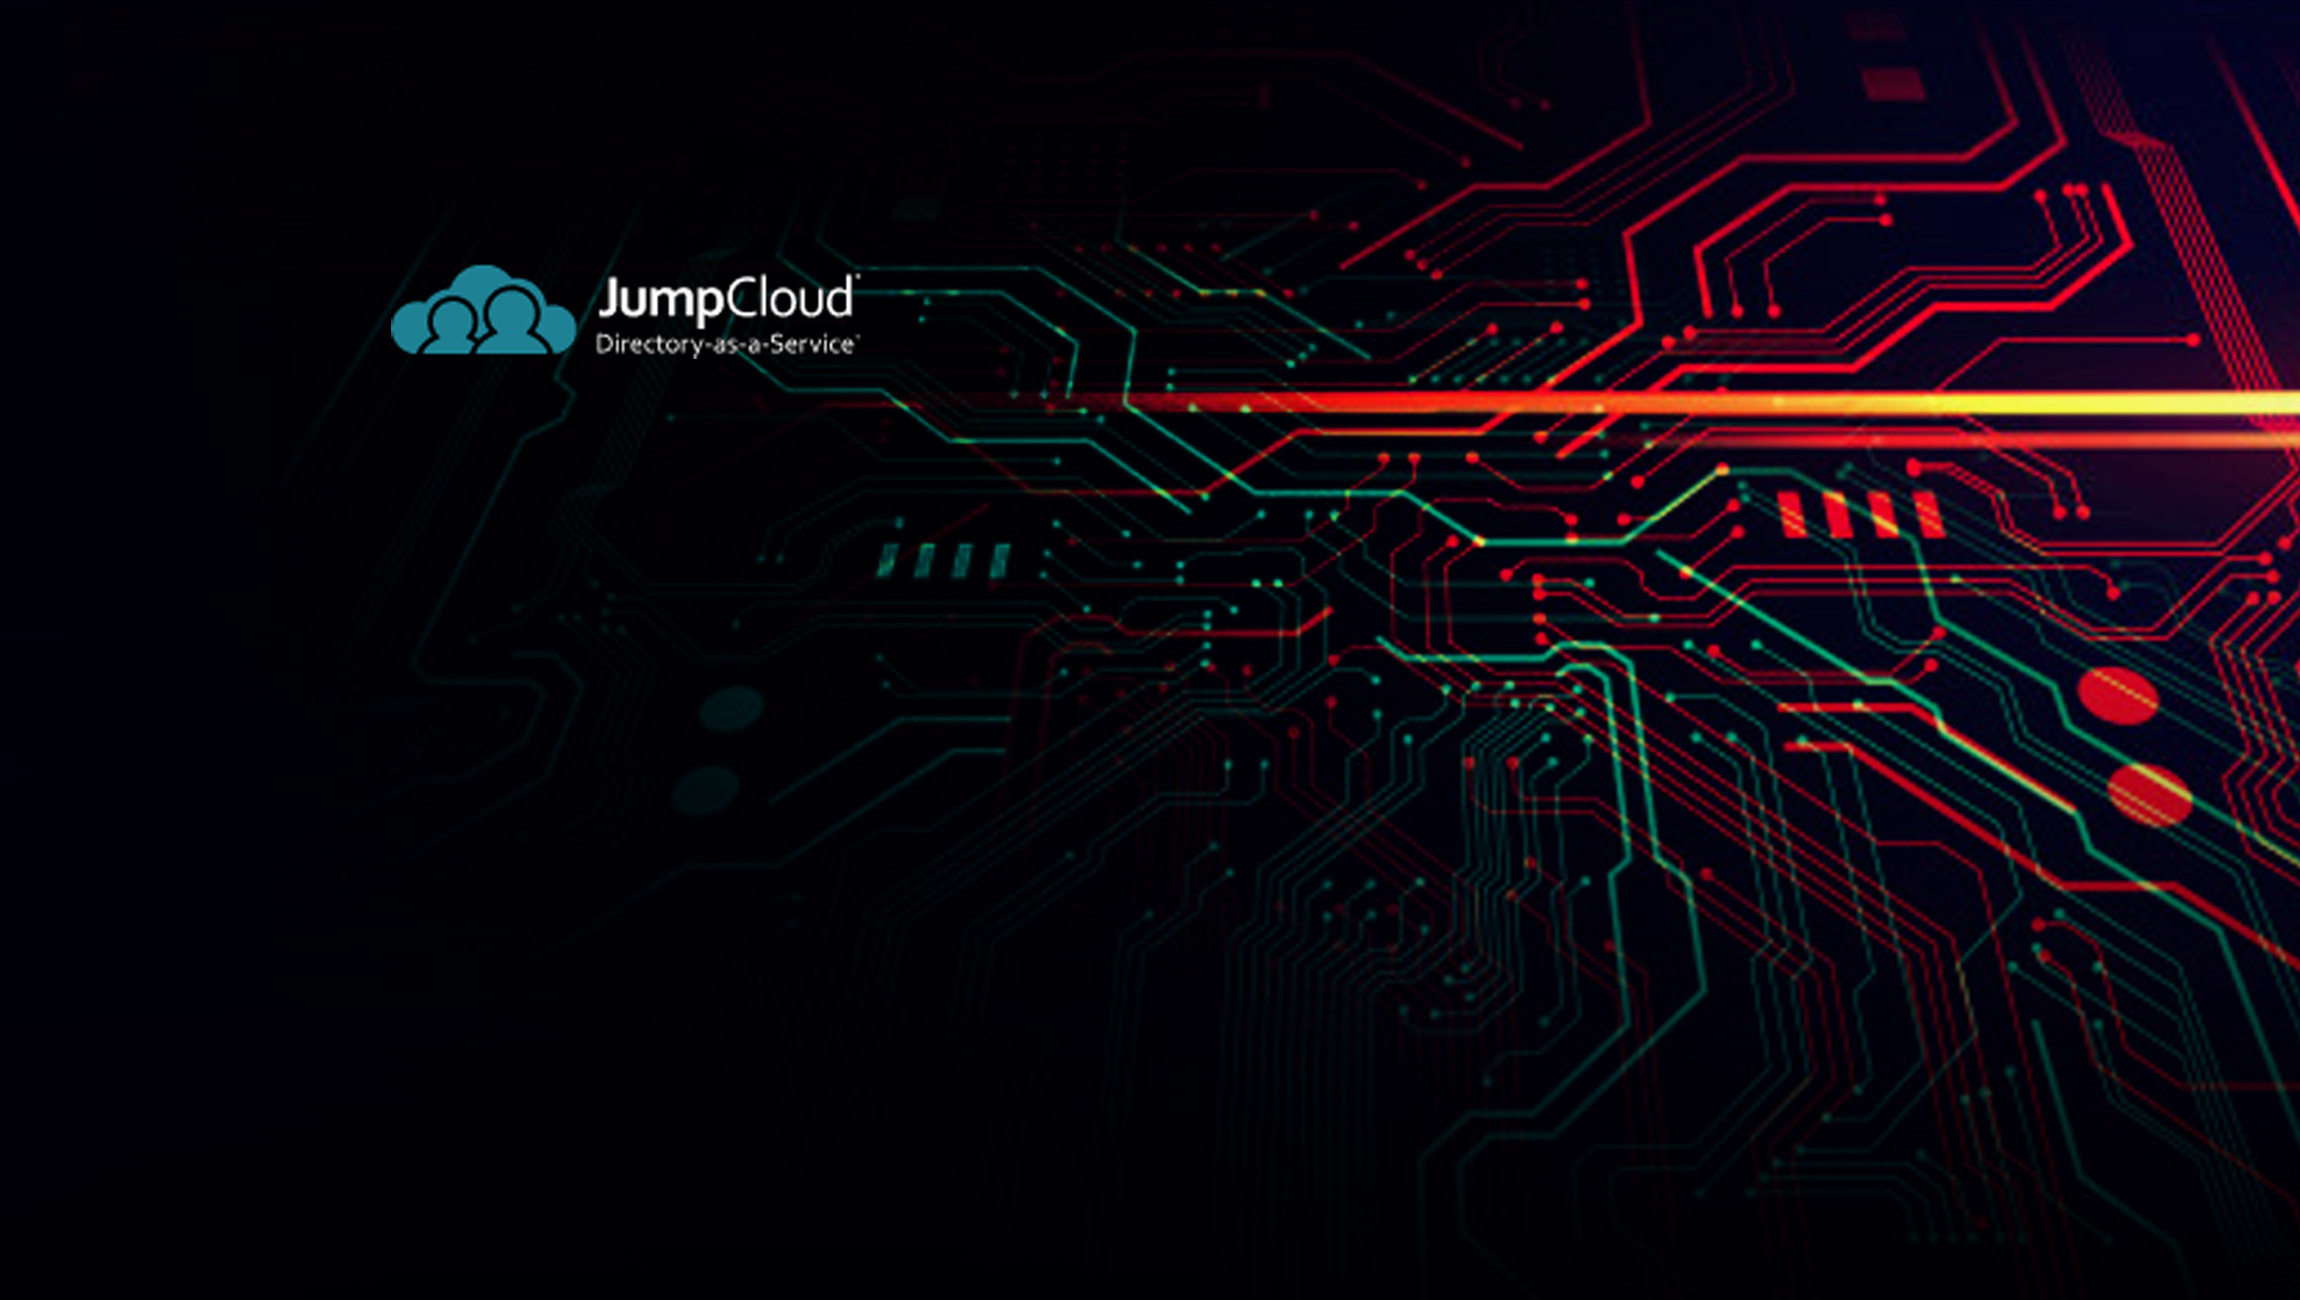 New ESG & JumpCloud Study Uncovers IT's Biggest Identity and Security Challenges Due to COVID-19